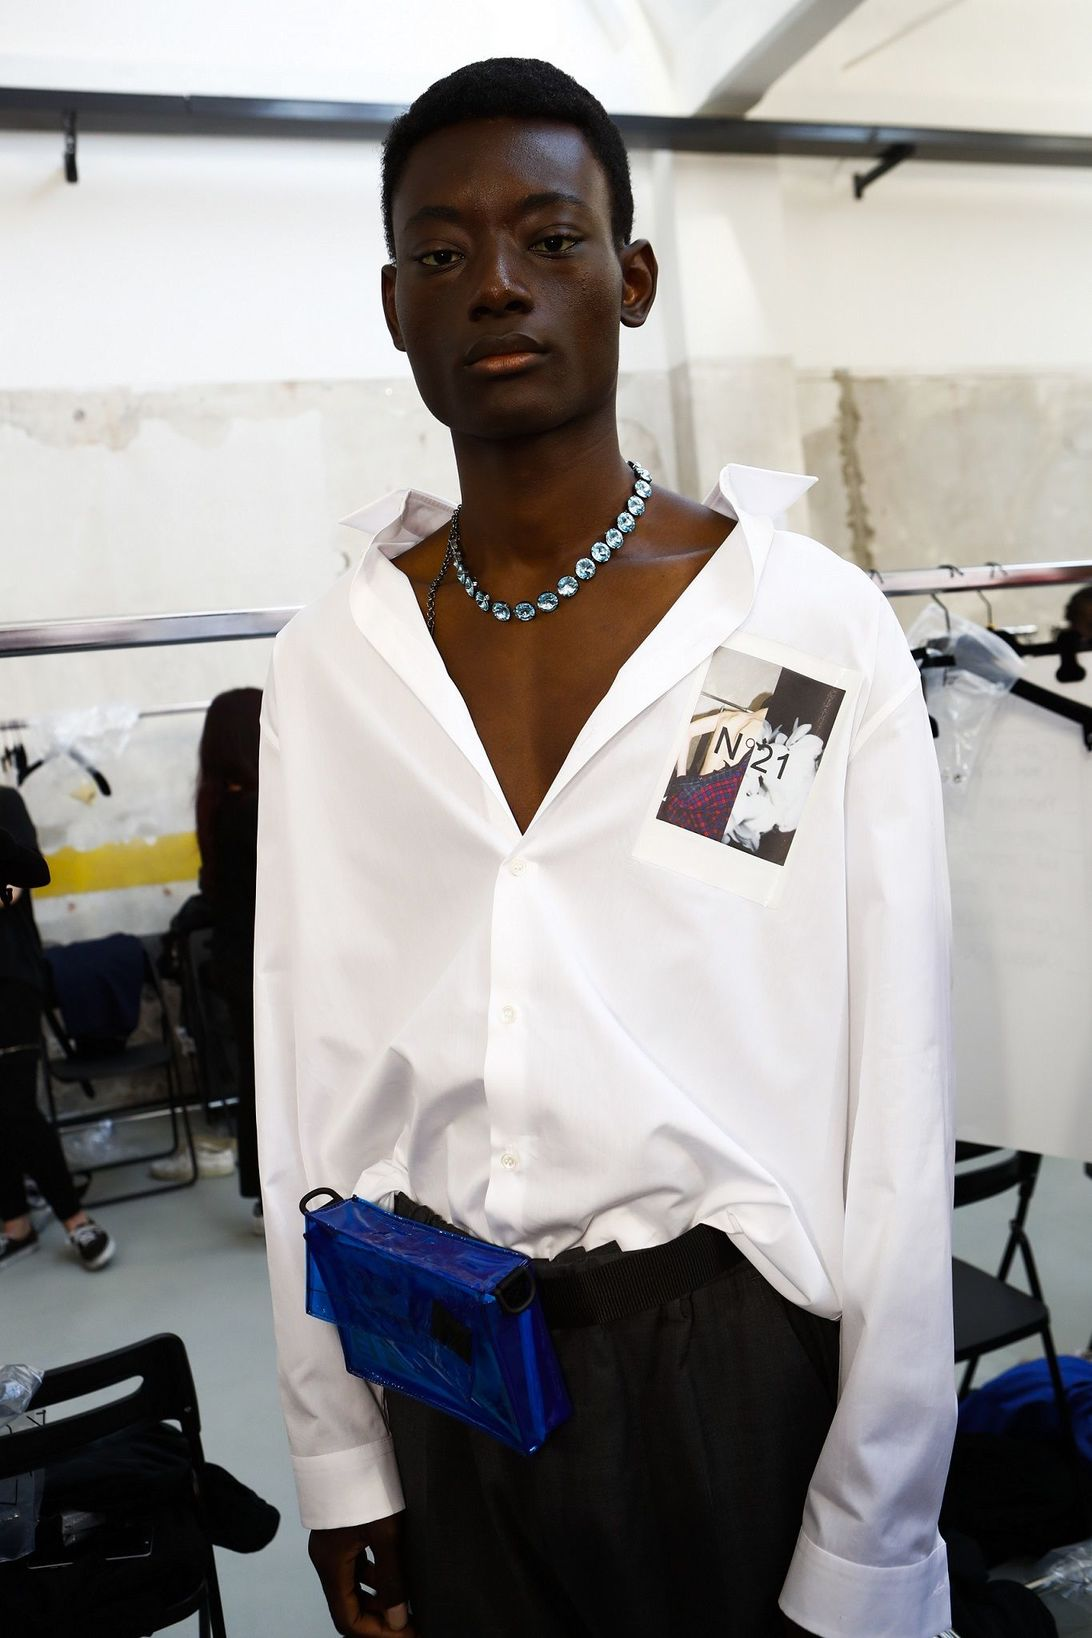 N21 withe shirt